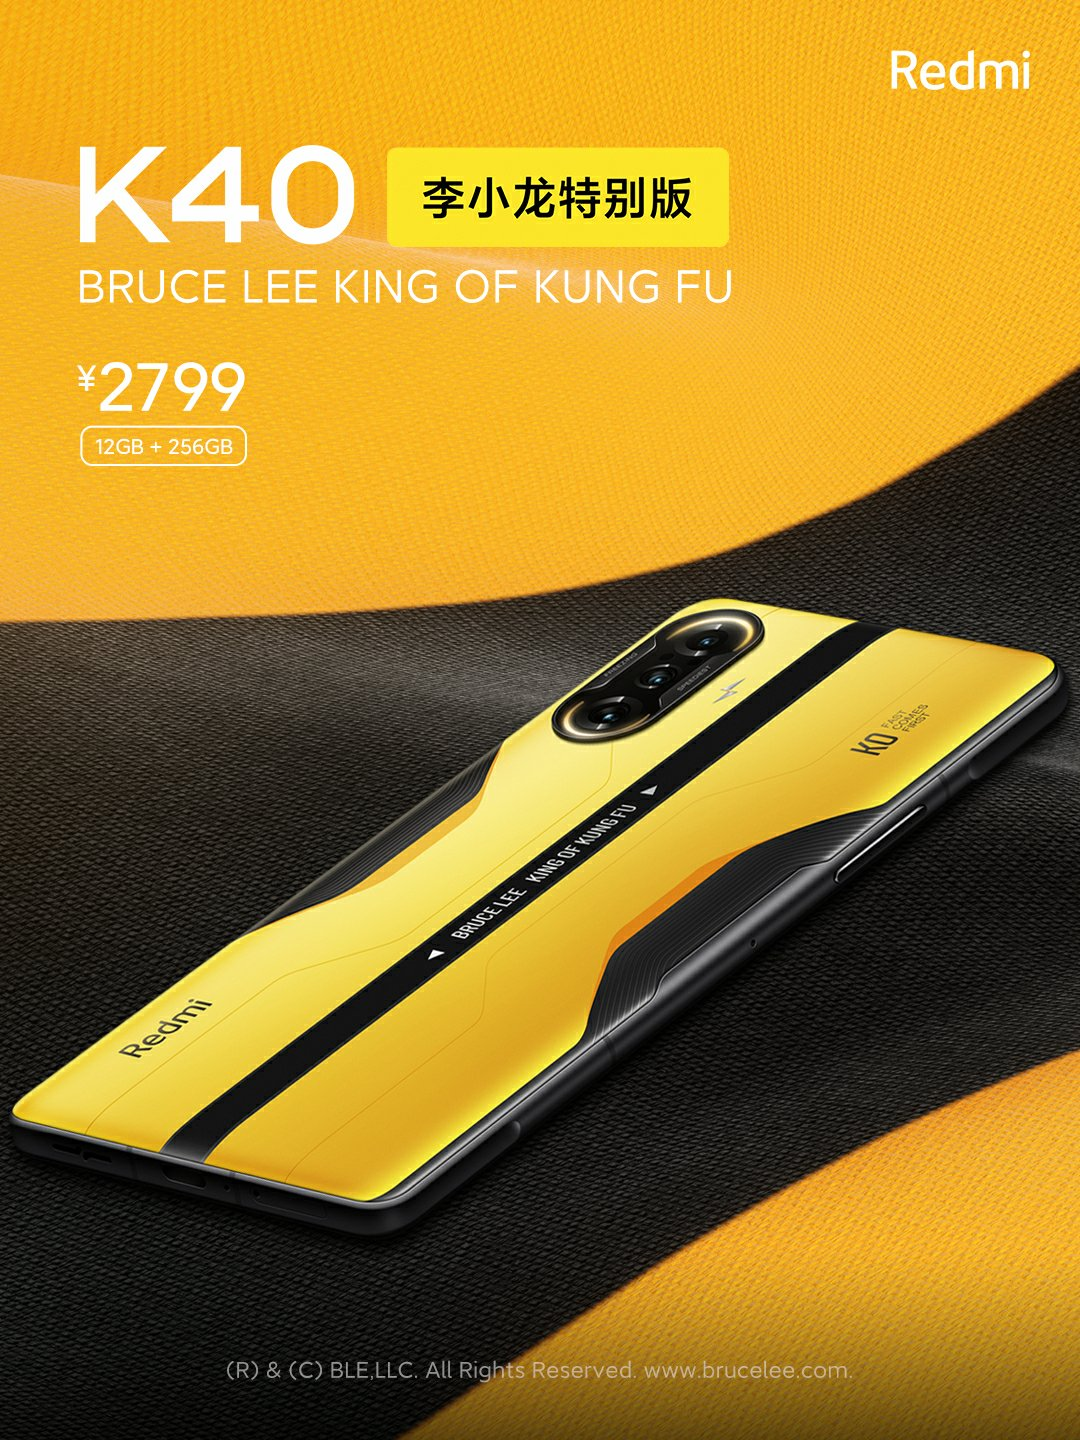 Redmi K40 Gaming Edition Debuts